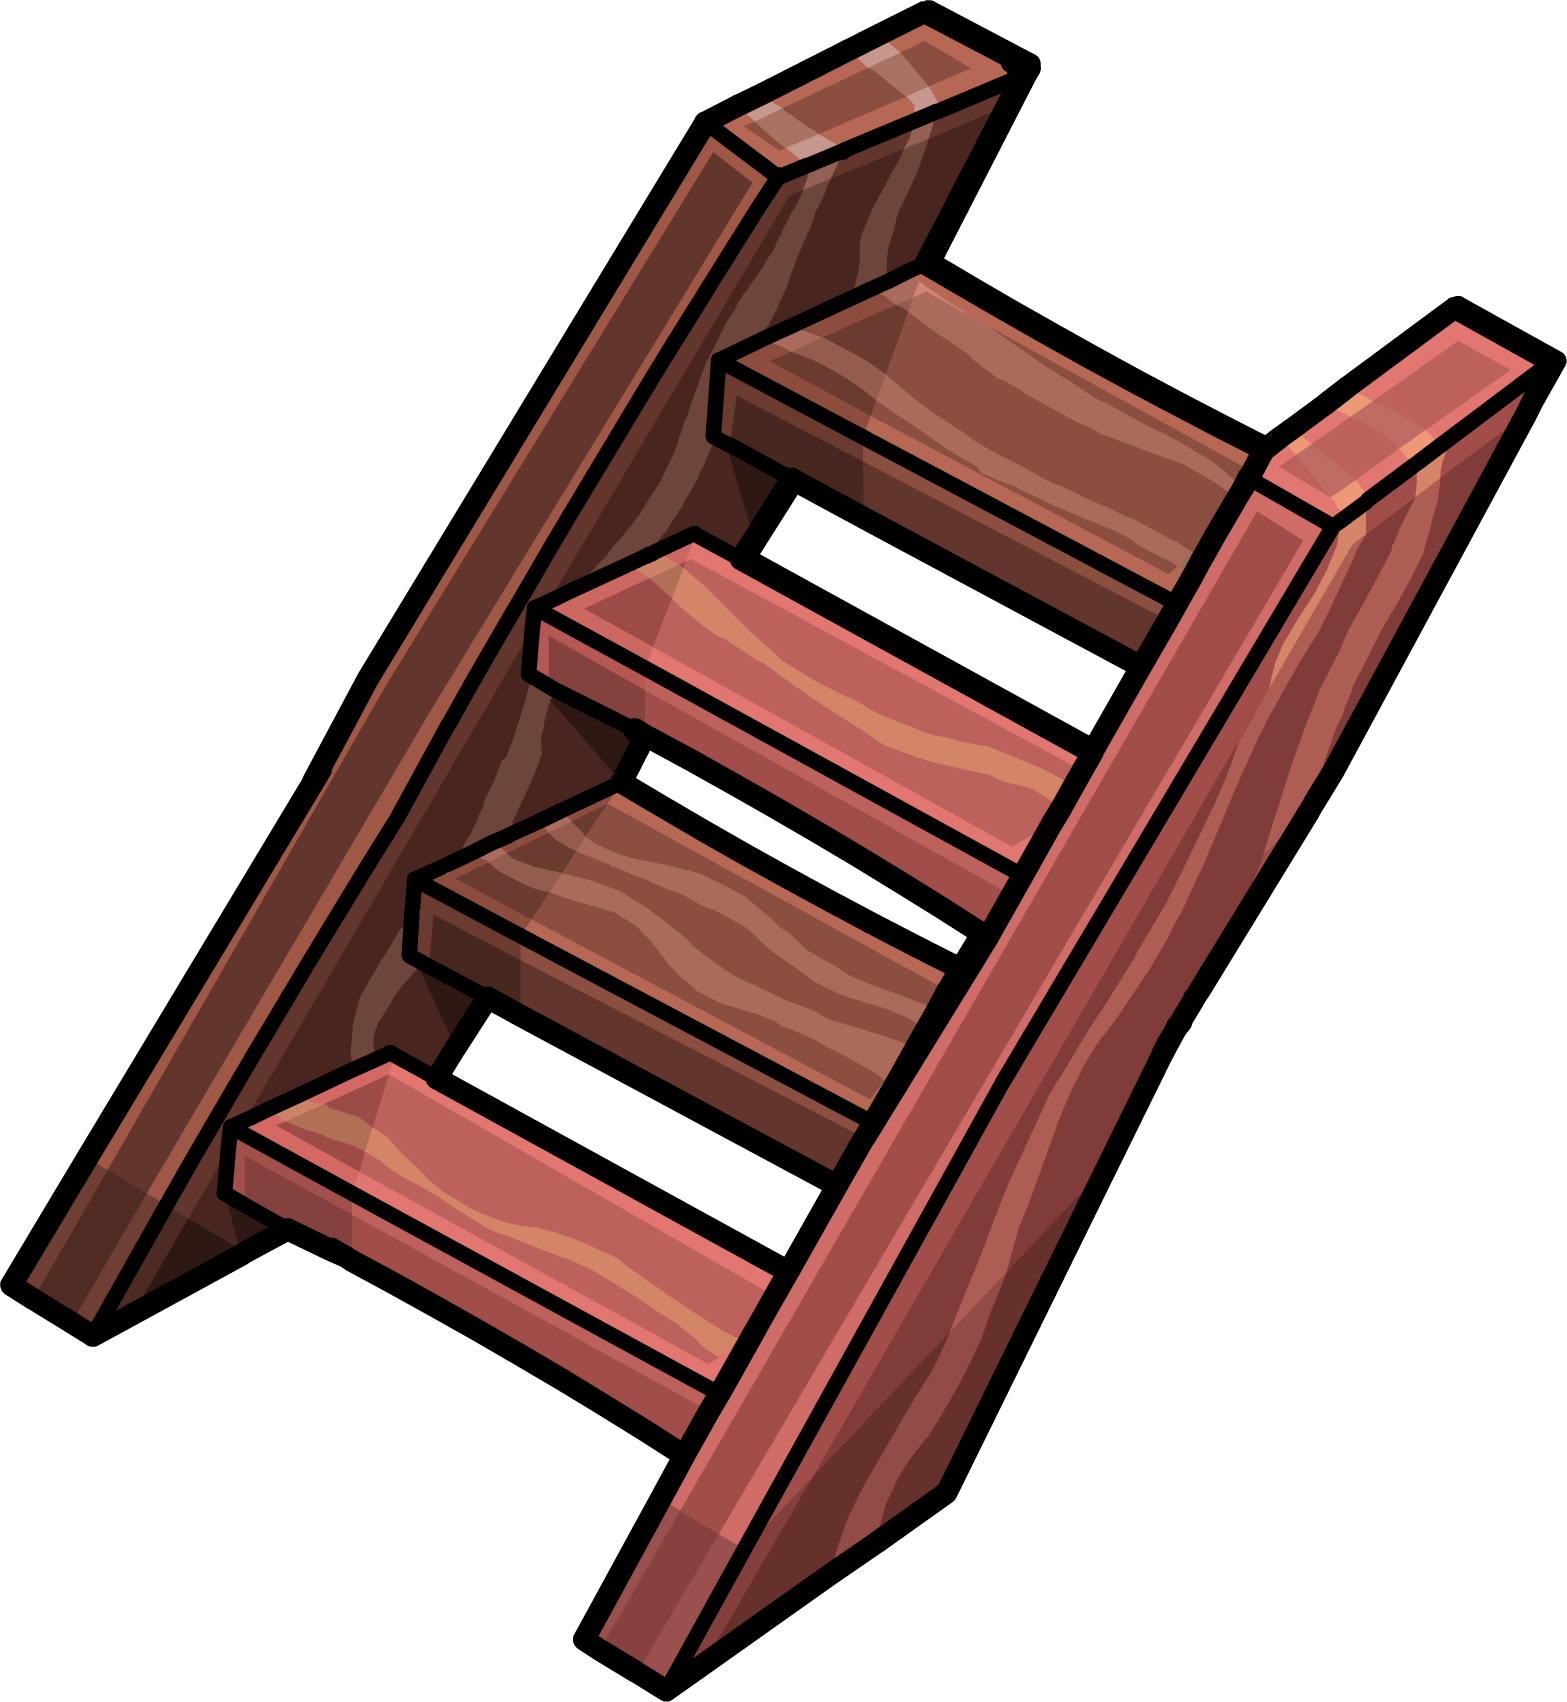 Steps club penguin wiki. Staircase clipart wooden stair